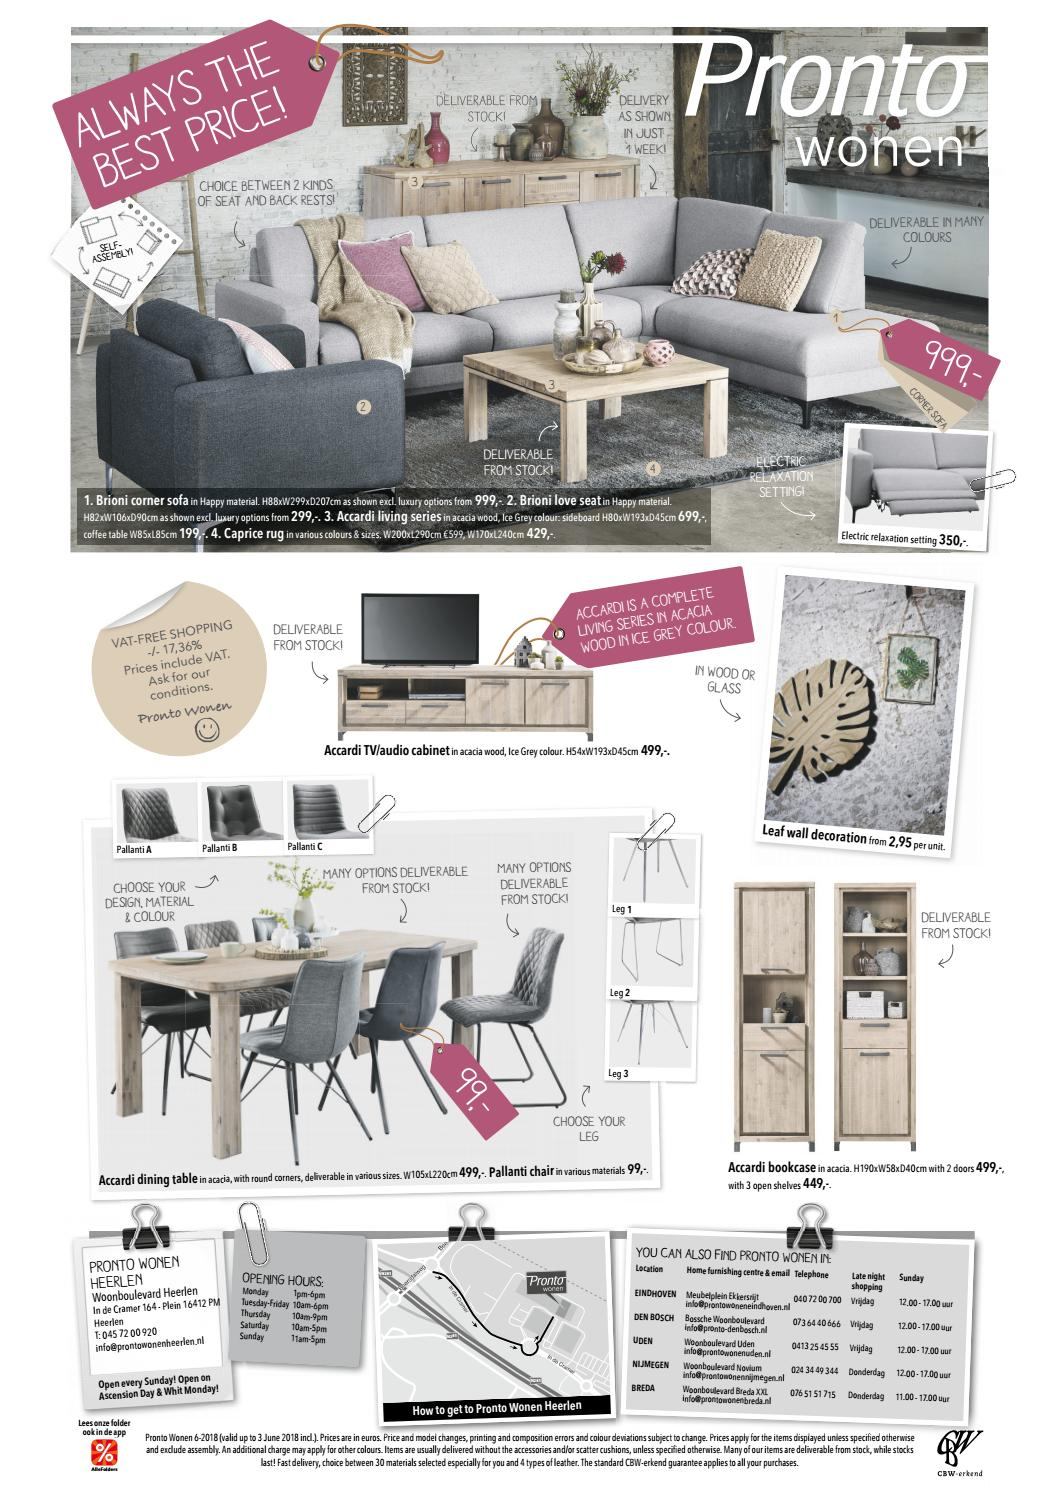 Seats En Sofa Heerlen Newcomers Guide 2018 Brunssum By T Swarte Schaap Issuu